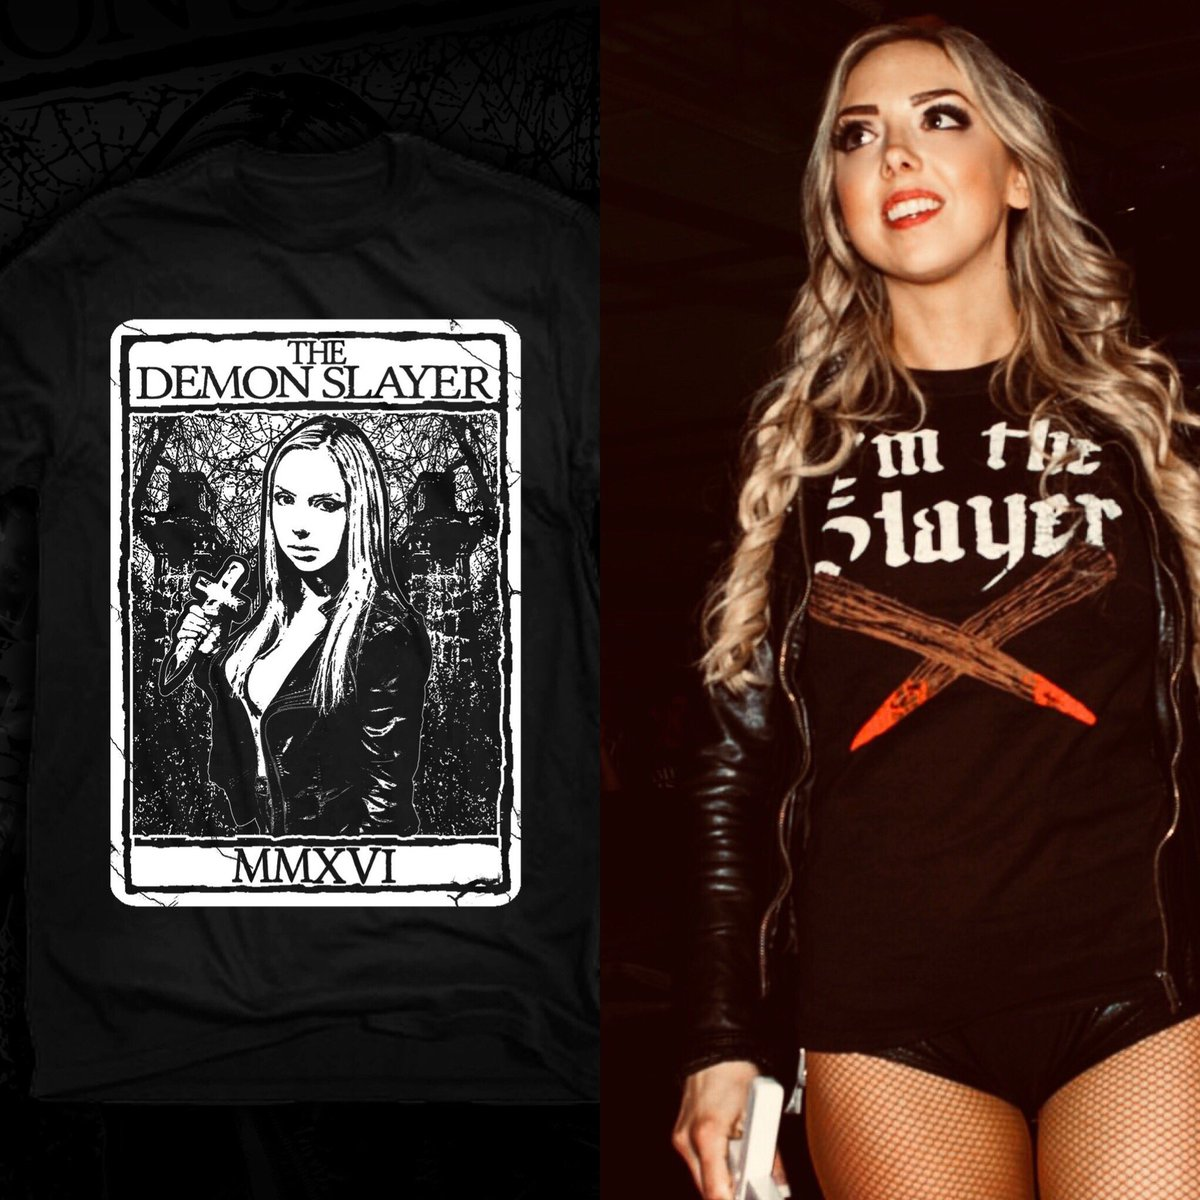 d96ae250 Slayer, 'Peg ringer, & everyone's favorite unemployed #MVPD officer tees  are limited! https://t.co/hIwS0eNpV4 💀x🐰… https://t.co/D68Il3wCjO